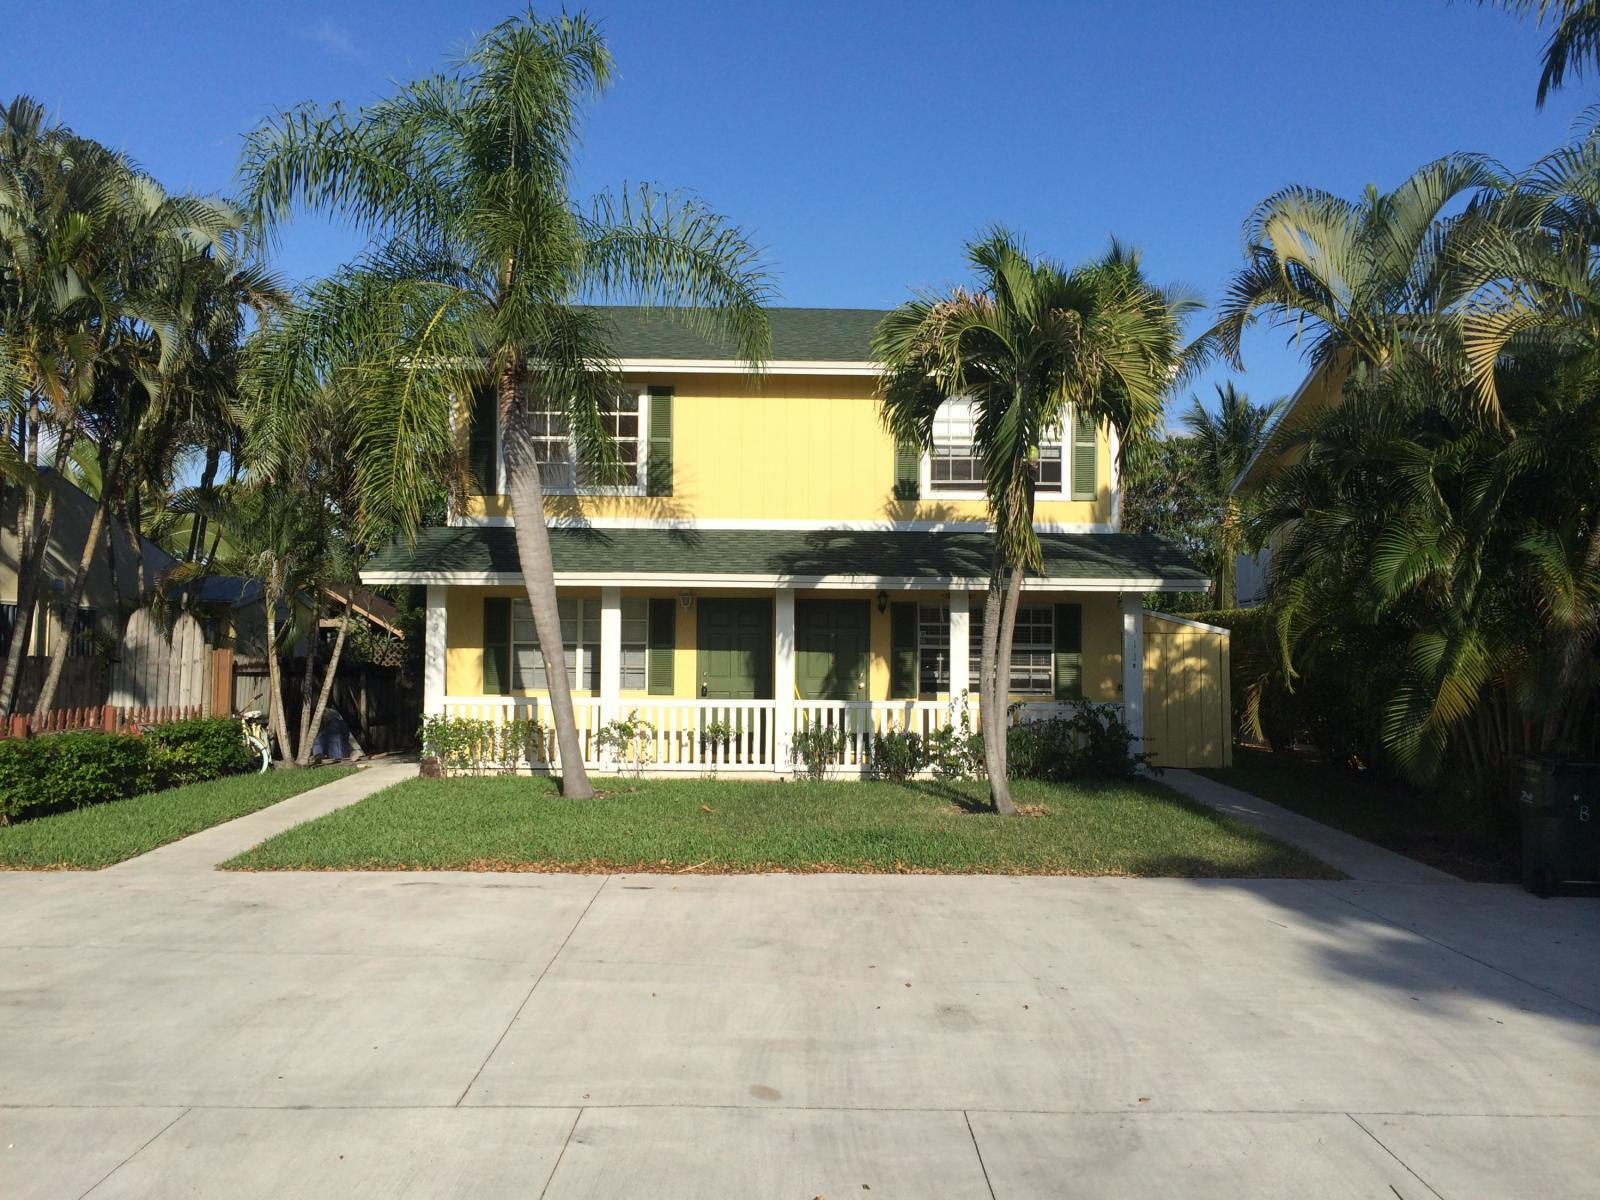 Home for sale in FREY SOPHIA ADD TO DELRAY Delray Beach Florida